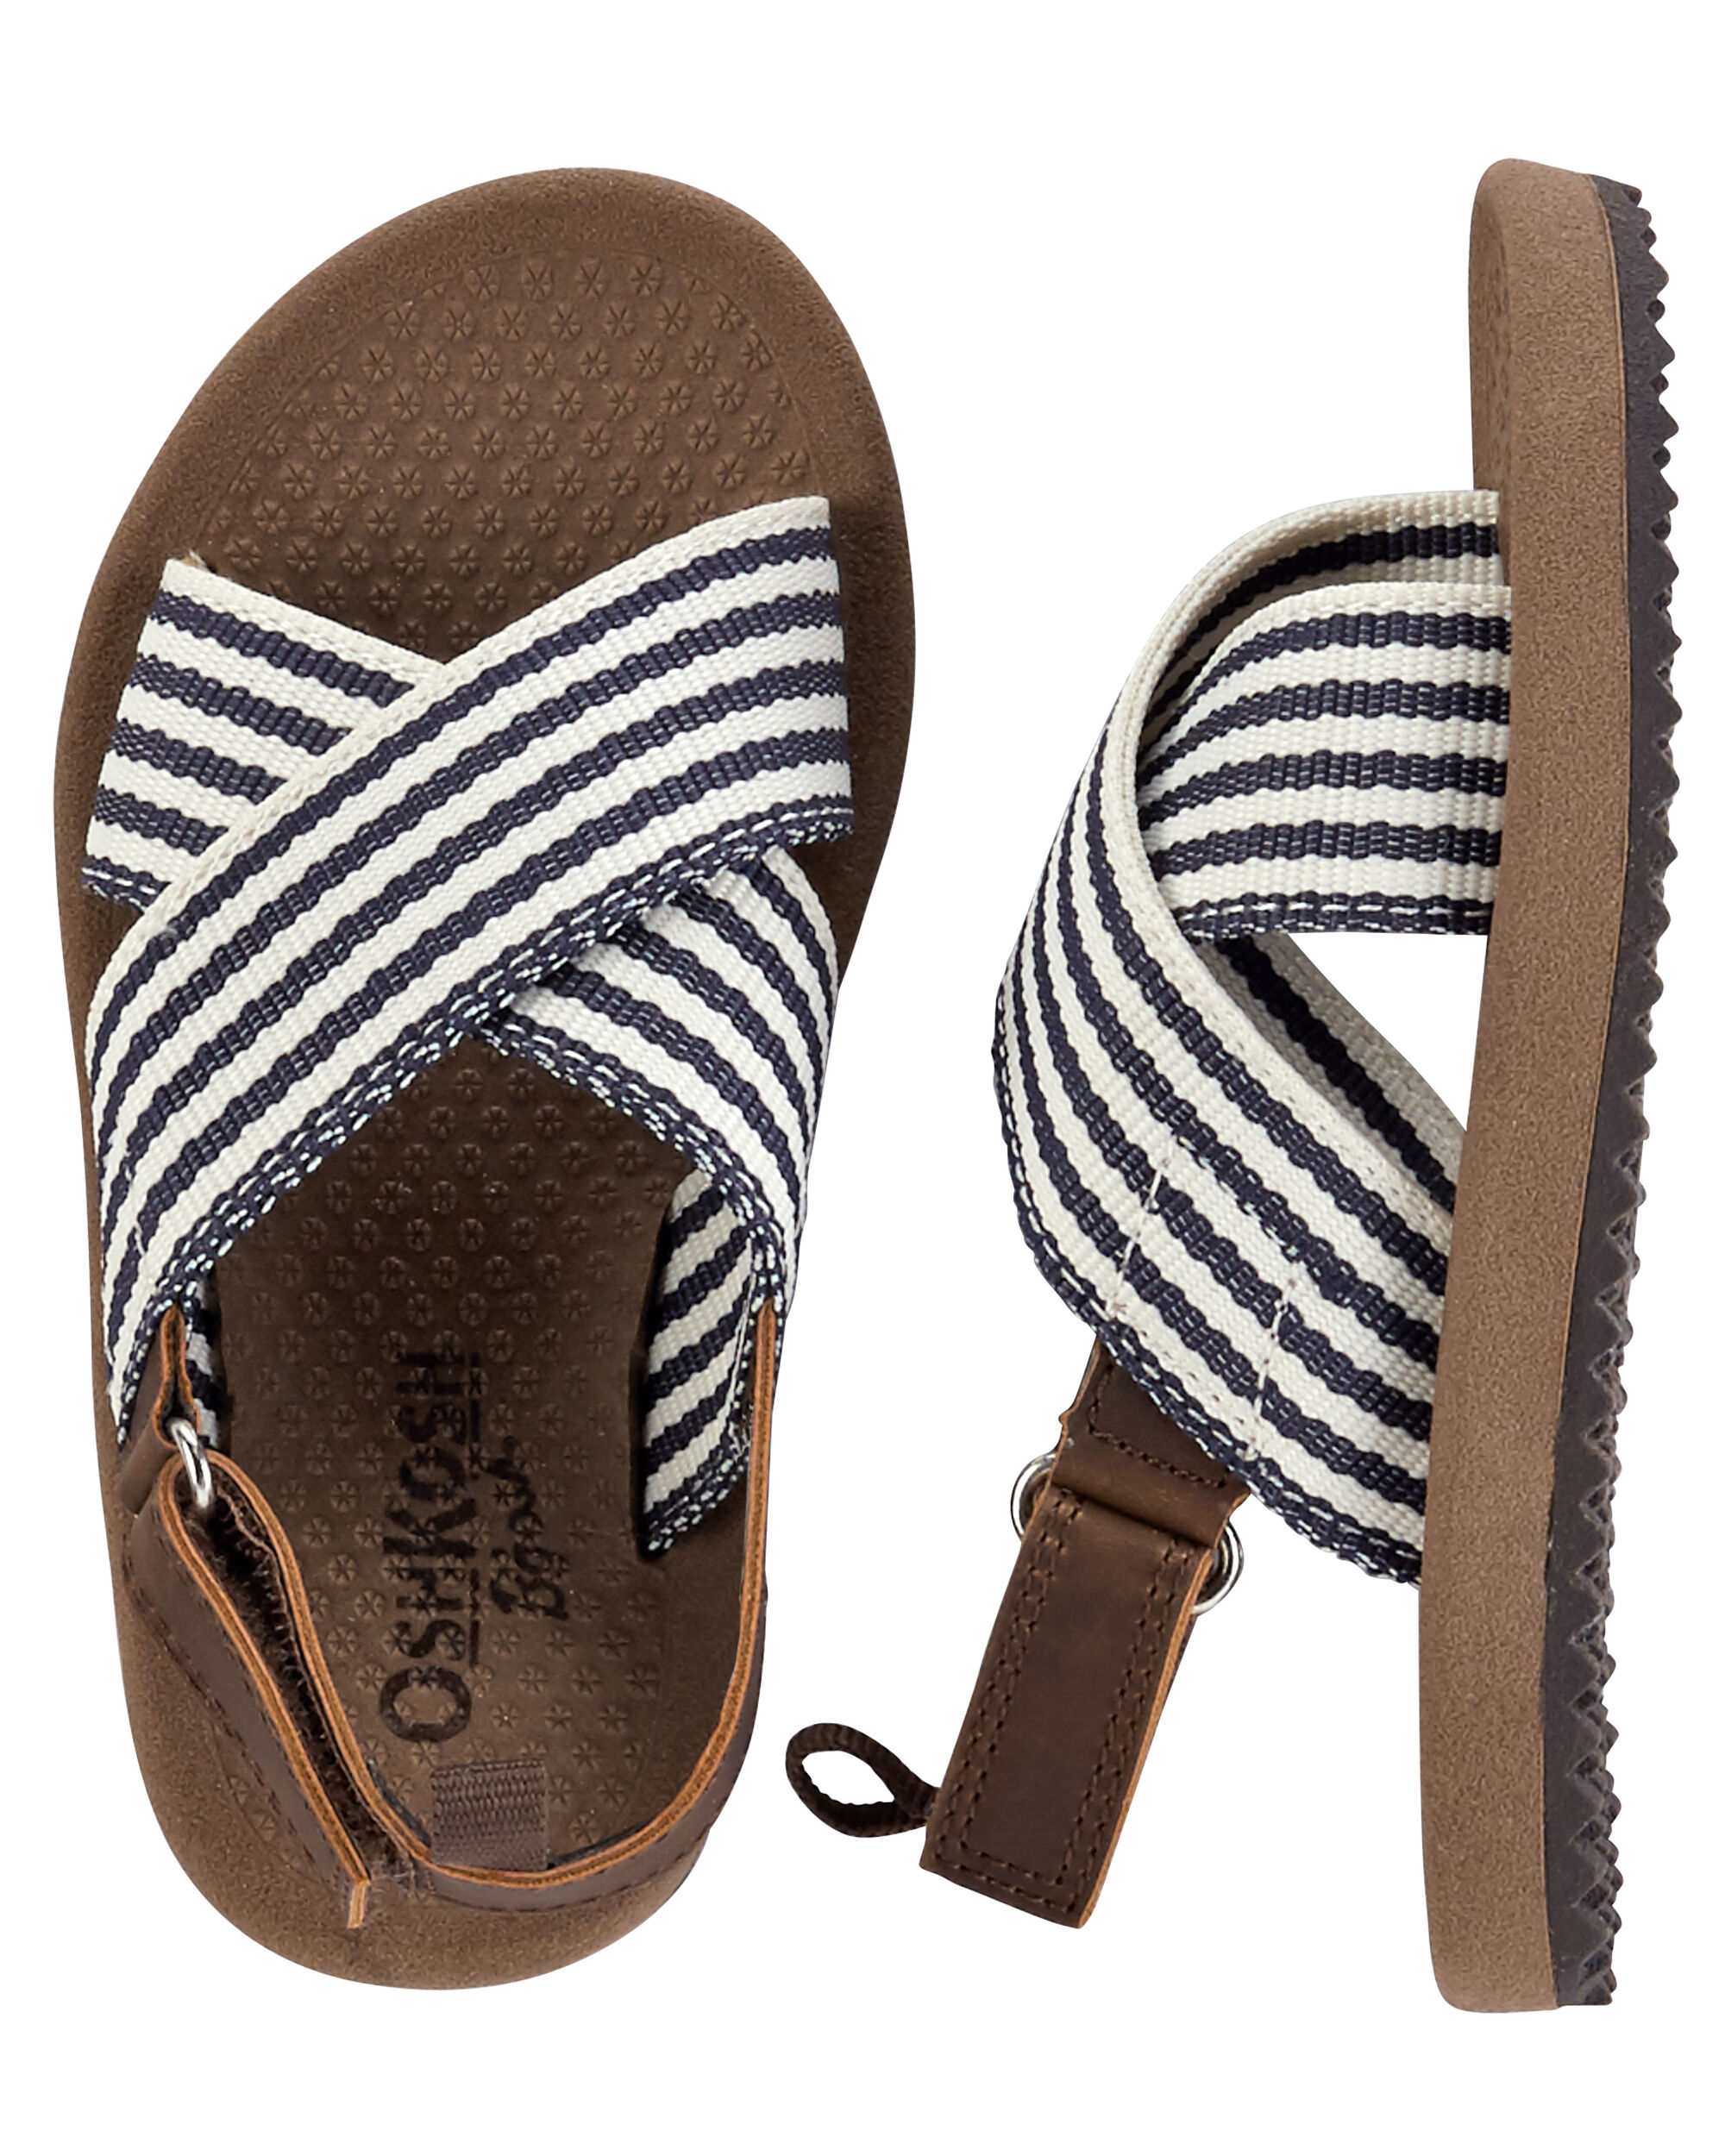 912c685c6782 Images. OshKosh Striped Sandals